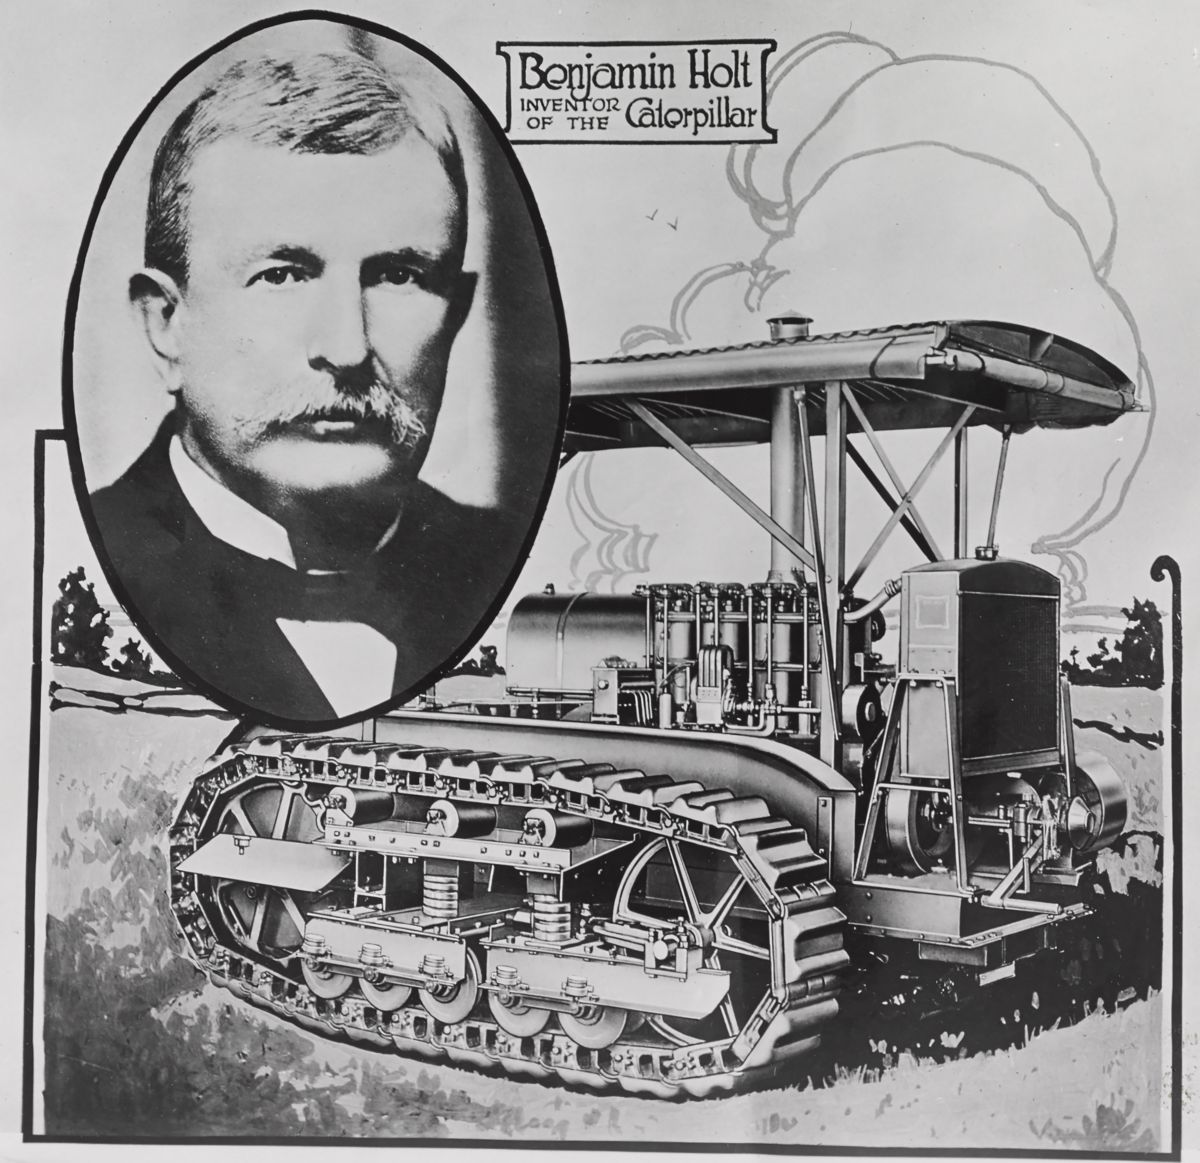 Benjamin Holt is credited with inventing the first commercially successful track-type tractor in 1904.